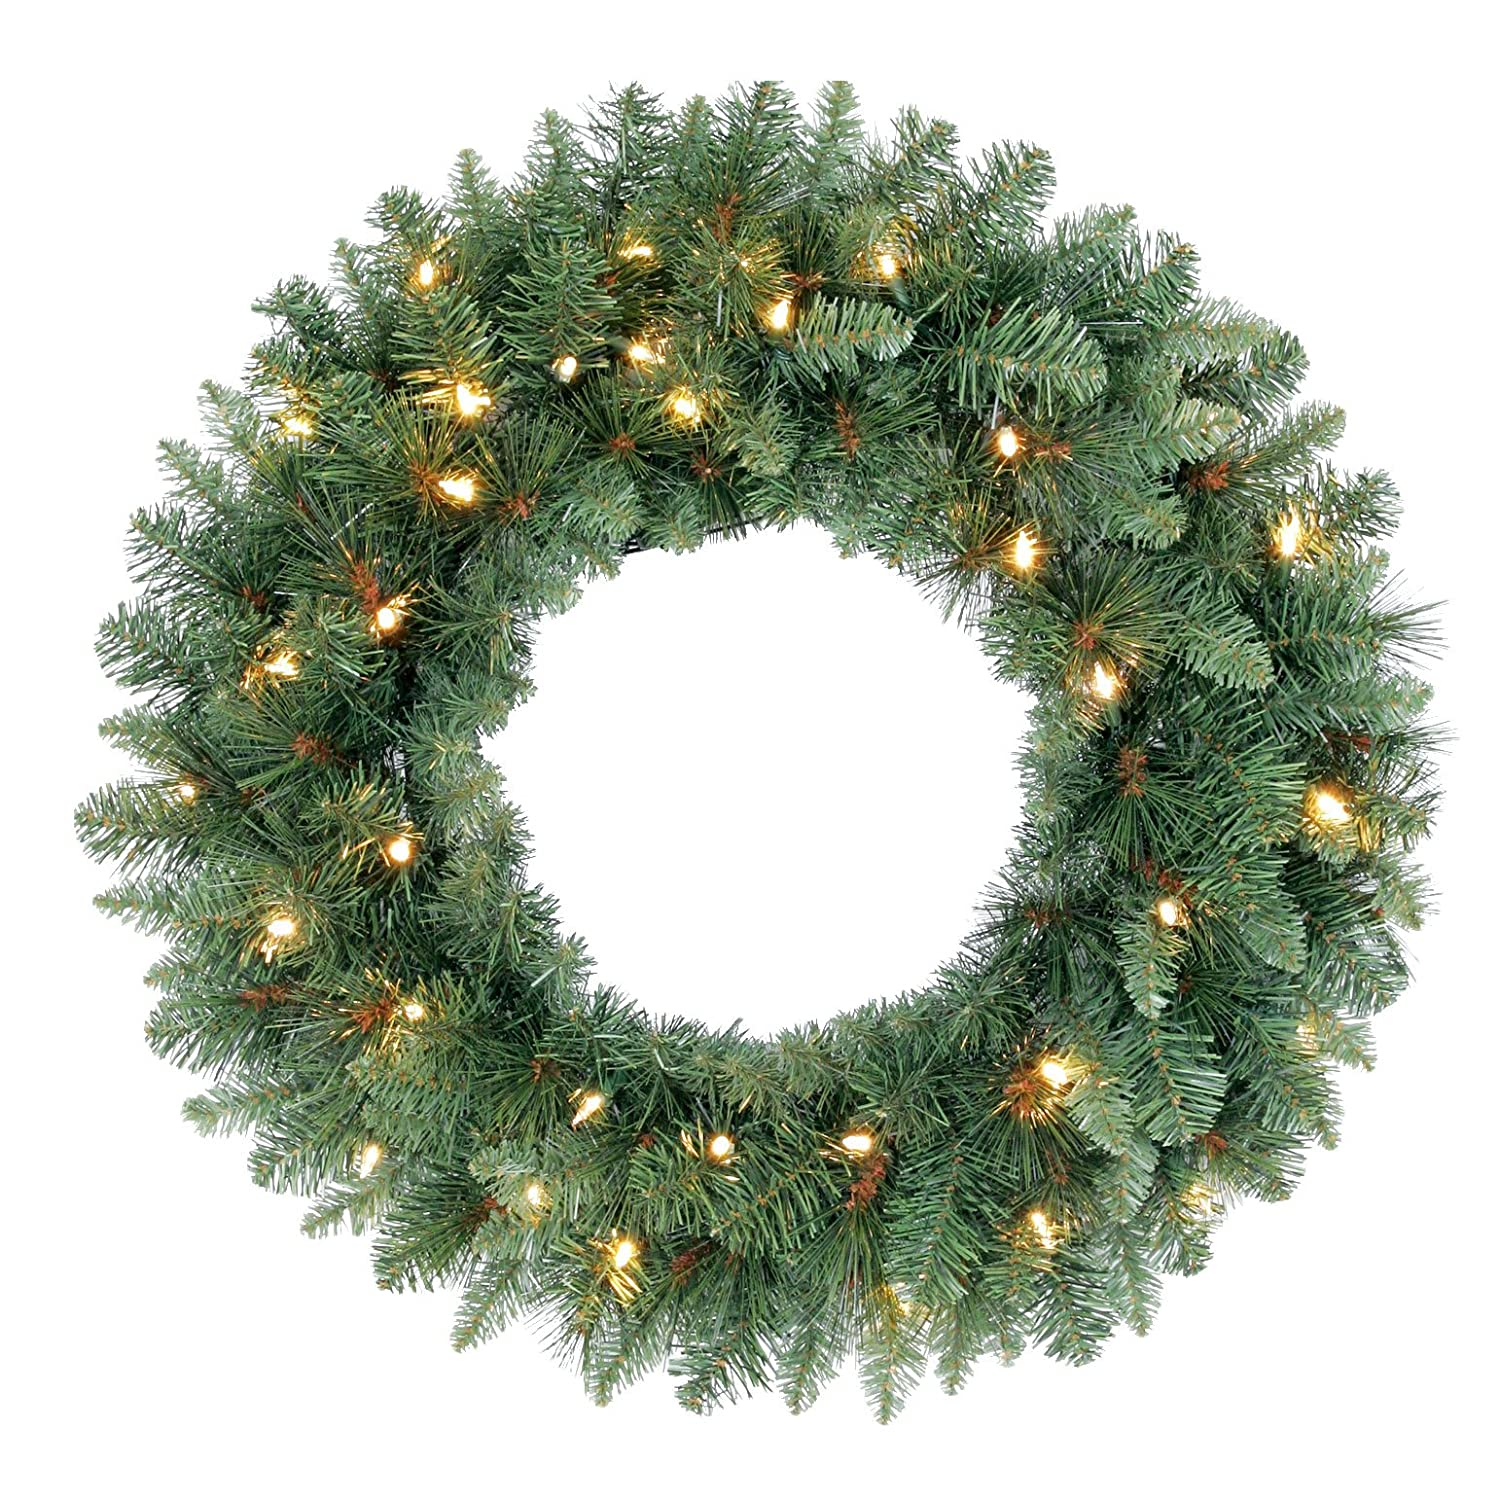 Bethlehem lights wreath battery operated - Border Concepts Swiss Pine Battery Operated Led Christmas Wreath